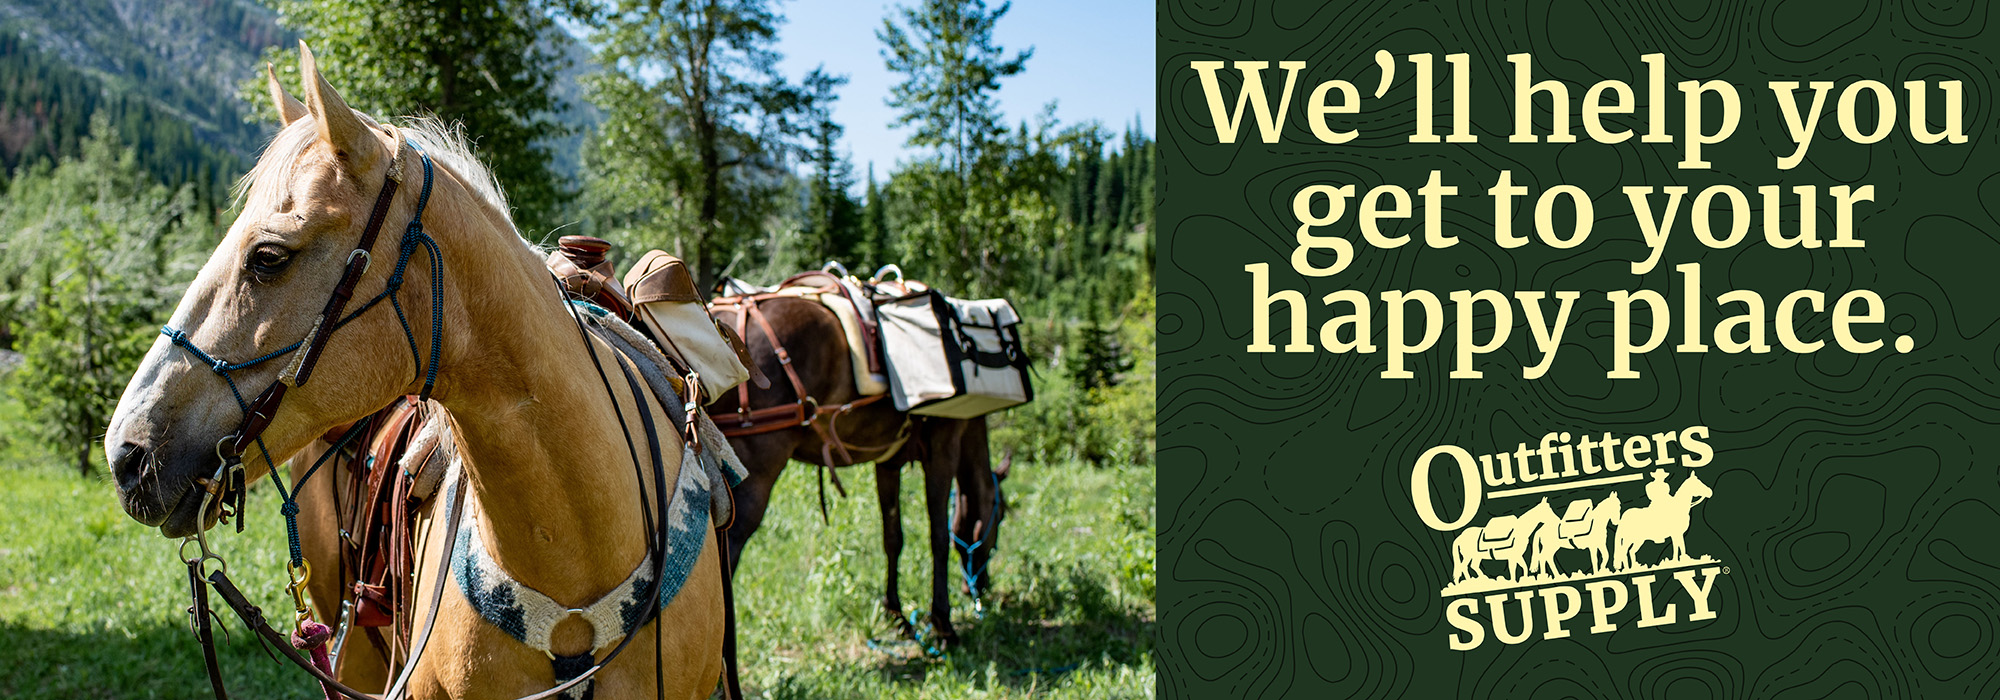 Outfitters Supply | Tack, Saddles, Horse Packing Gear, Trail